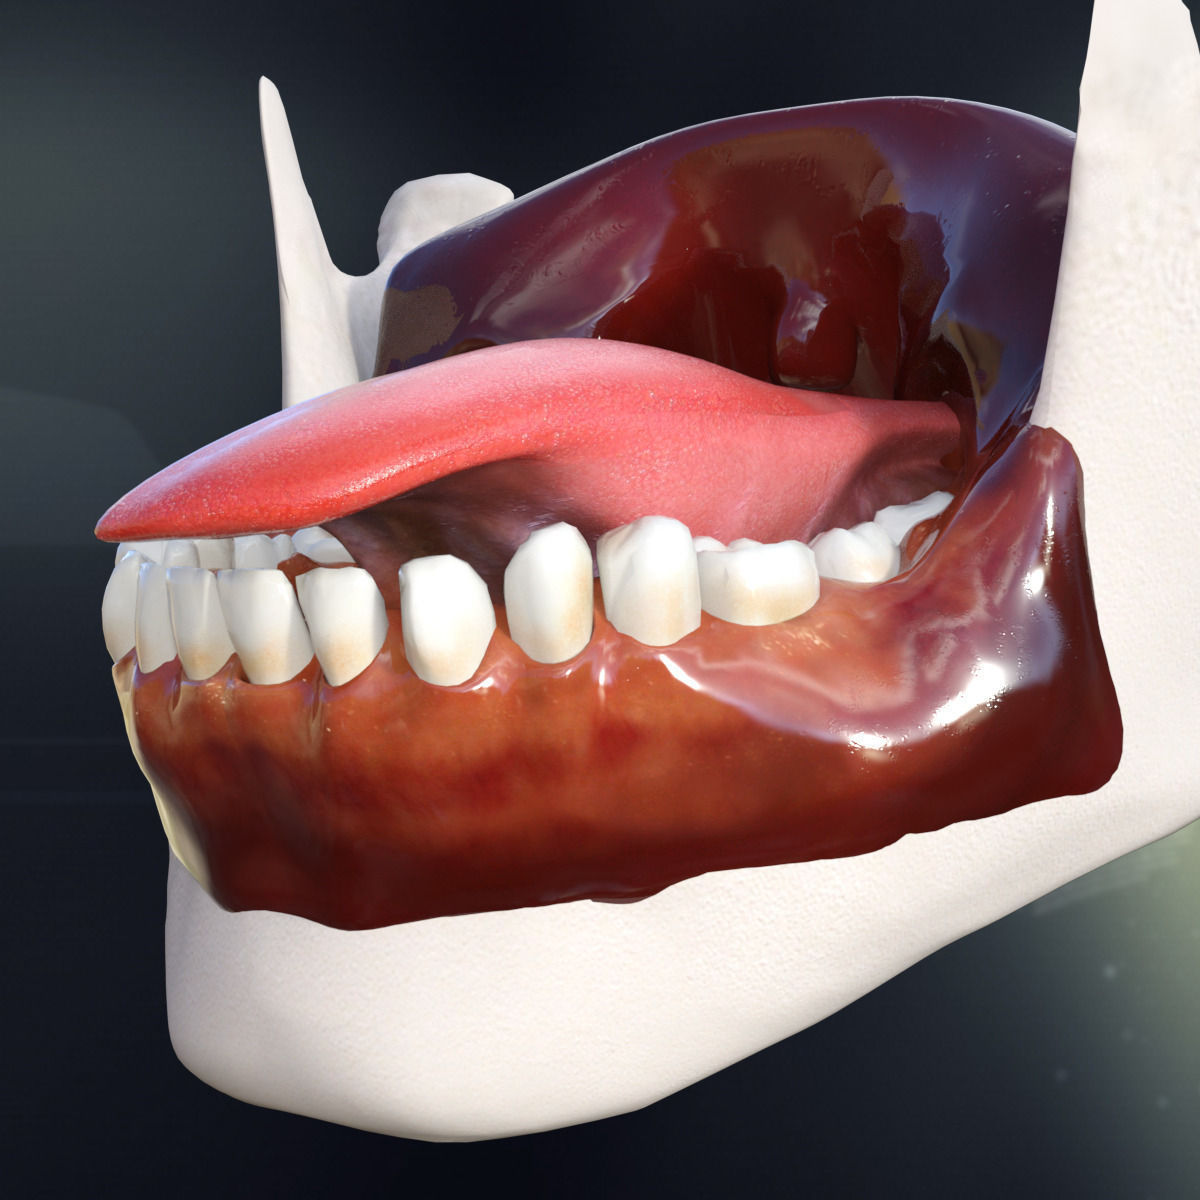 Human Teeth Gums And Tongue Anatomy 3d Model Cgtrader